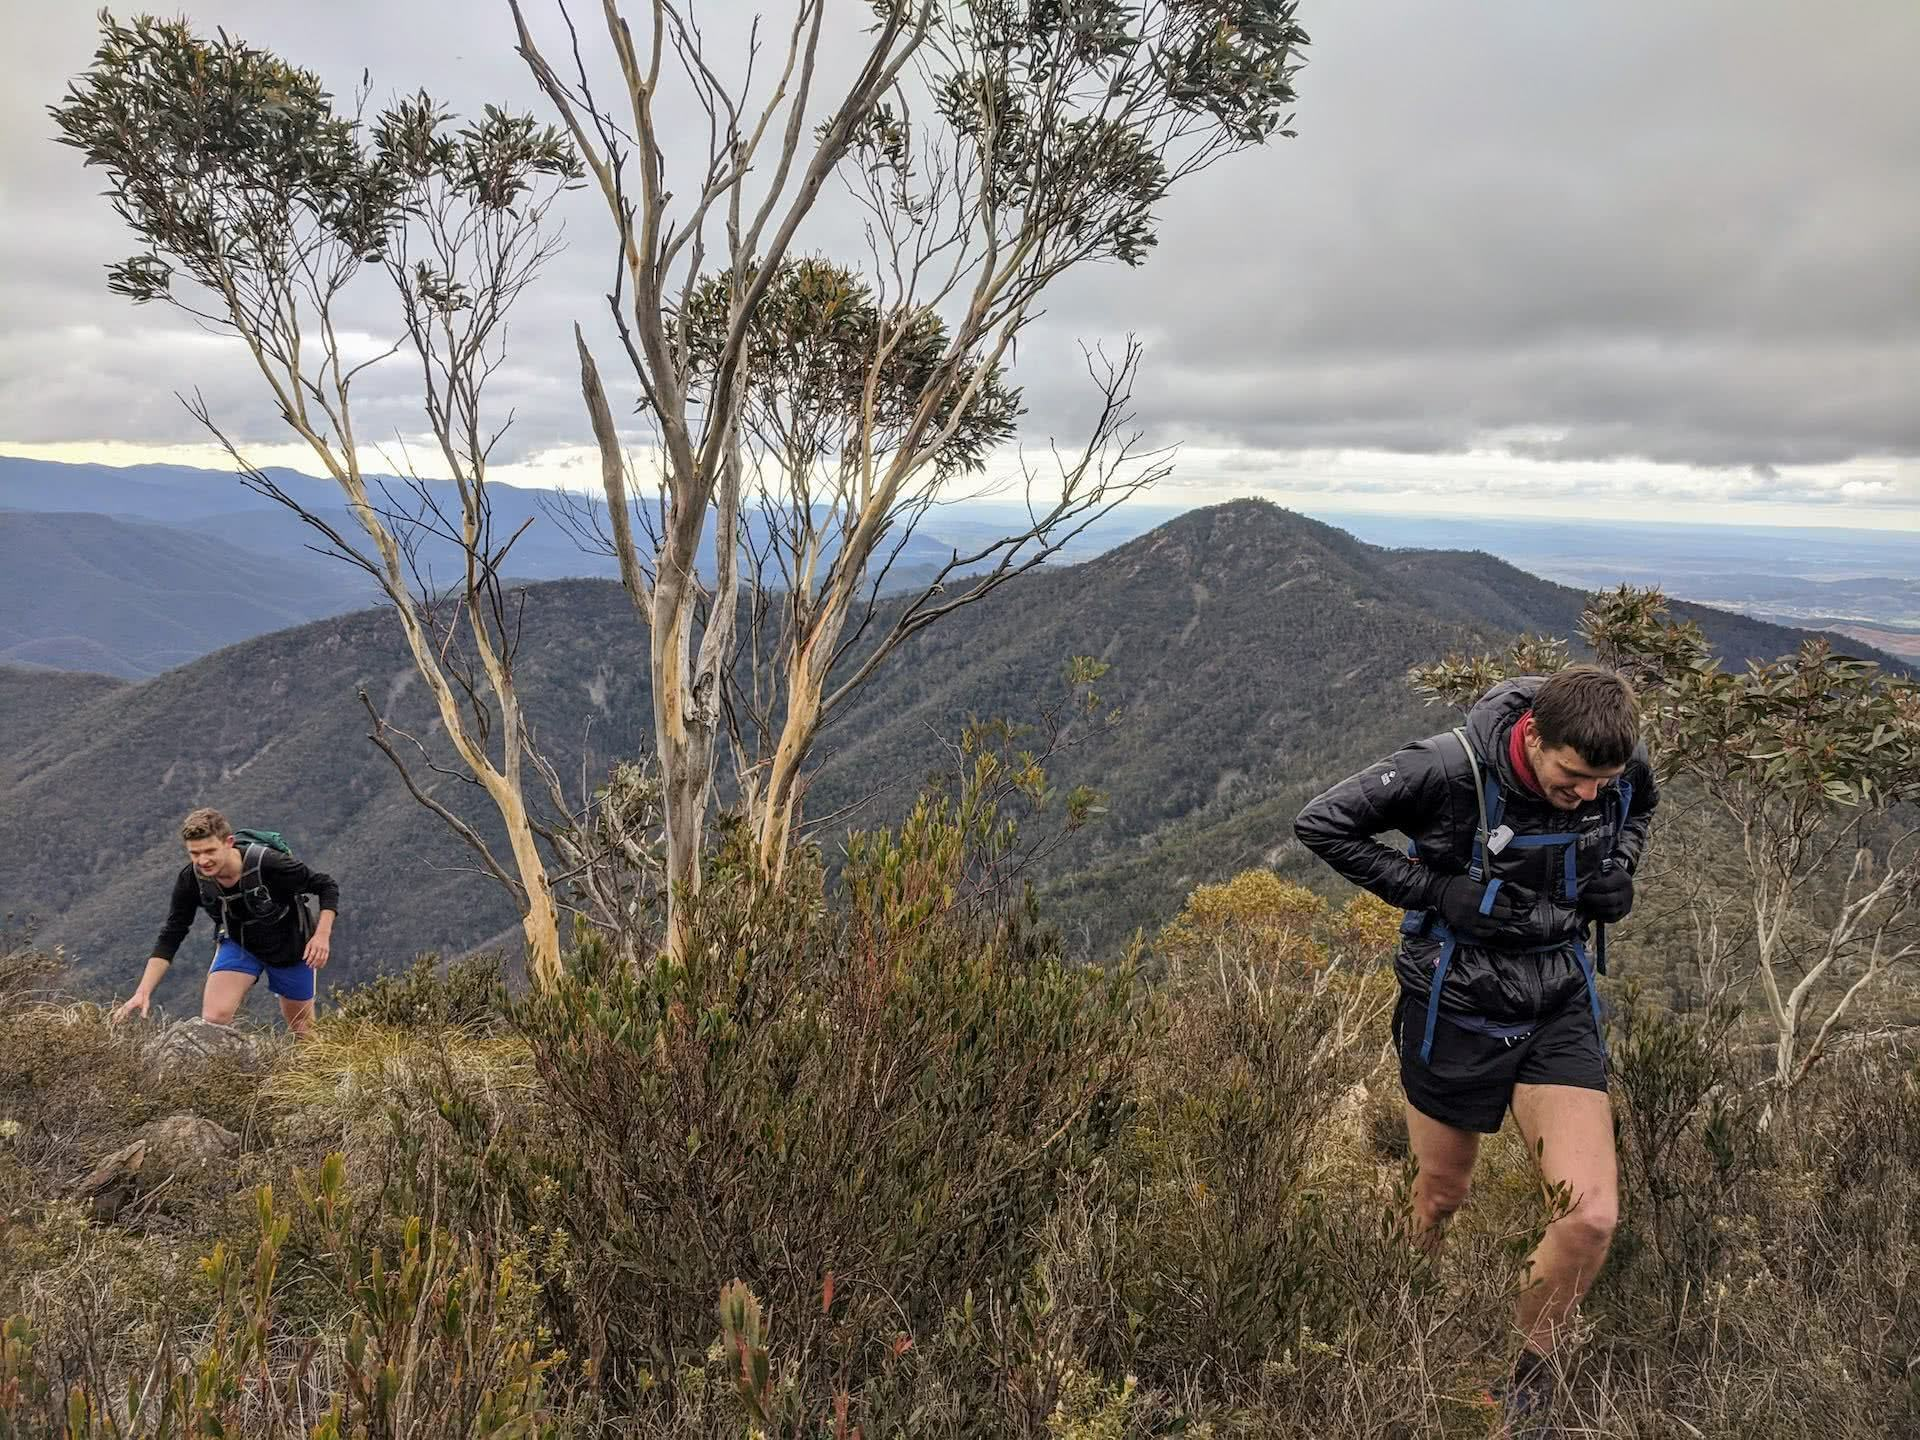 Route Guide, Peak Hopping Across Tidbinbilla Mountain, oliver Lilford, canberra, ACT